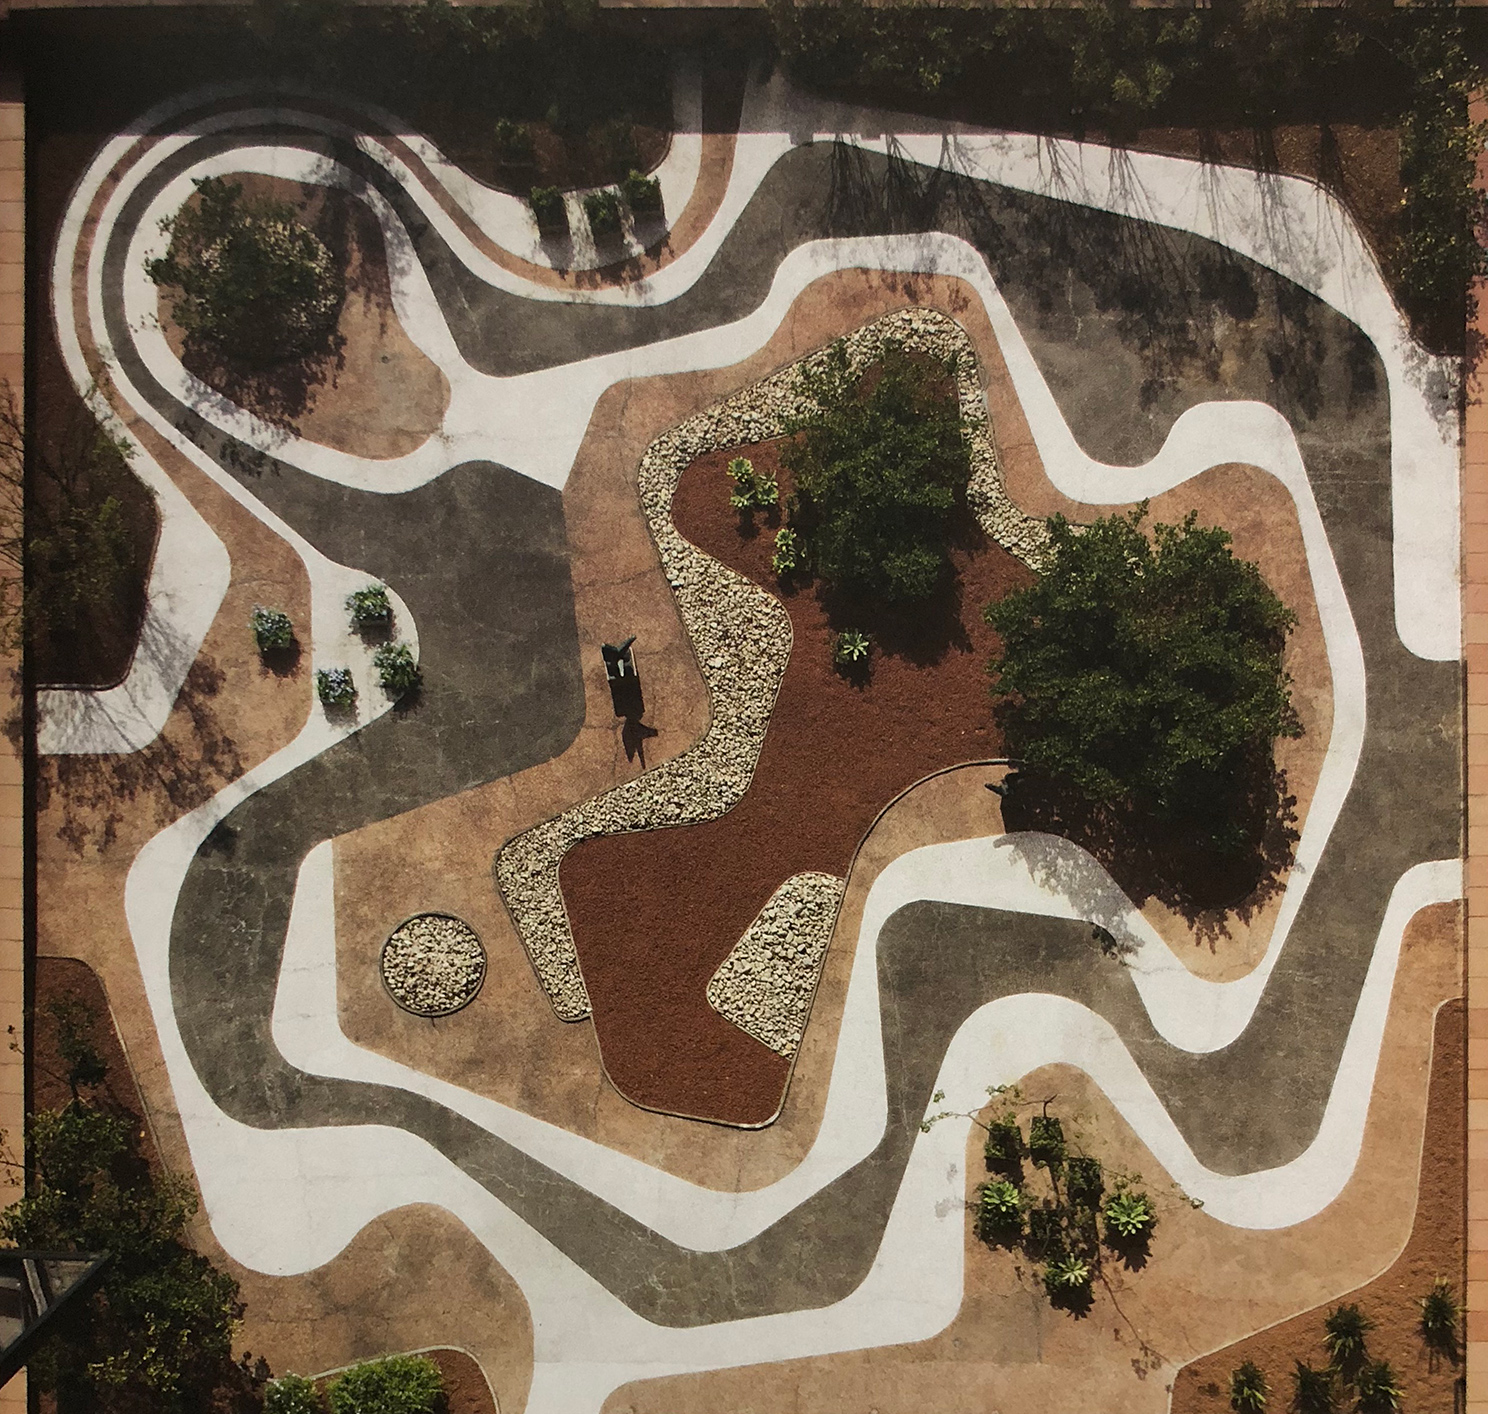 24. Roberto Burle Marx, Mineral roof garden, Banco Safra Headquarters, 1983, São Paulo.  Roberto Burle Marx - Brazilian Modernist , 2015, The Jewish Museum, New York